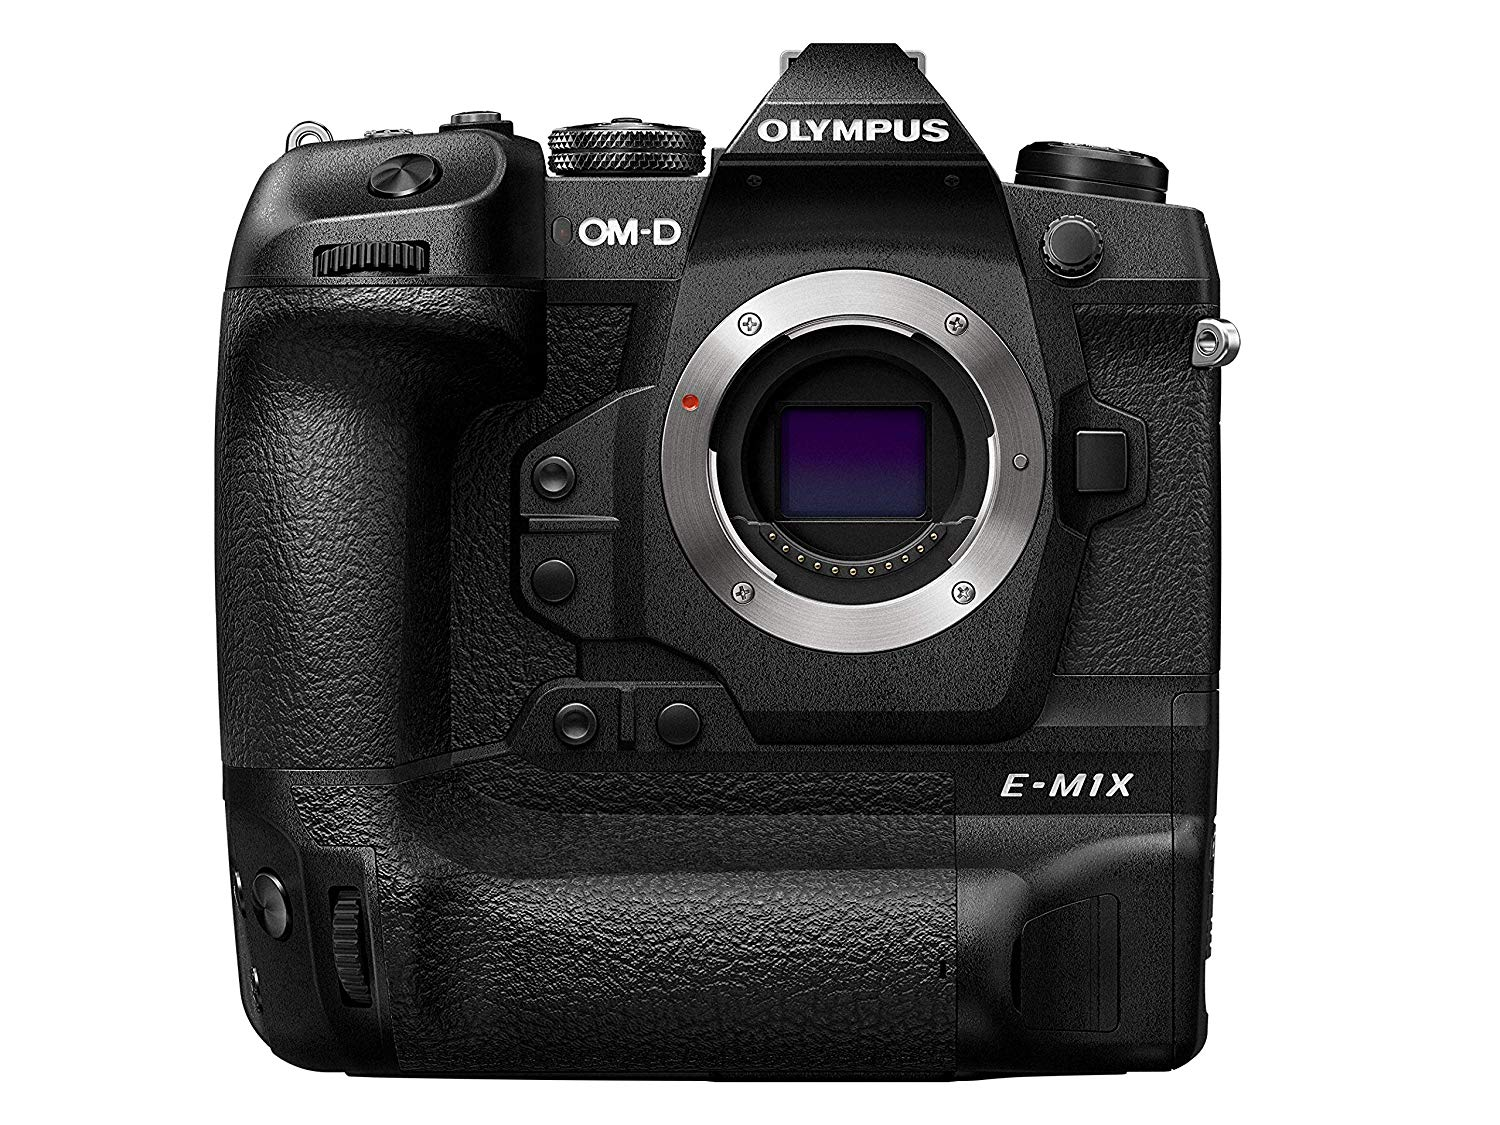 New Firmware Updates for Olympus E-M1X and E-M1 Mark III Released